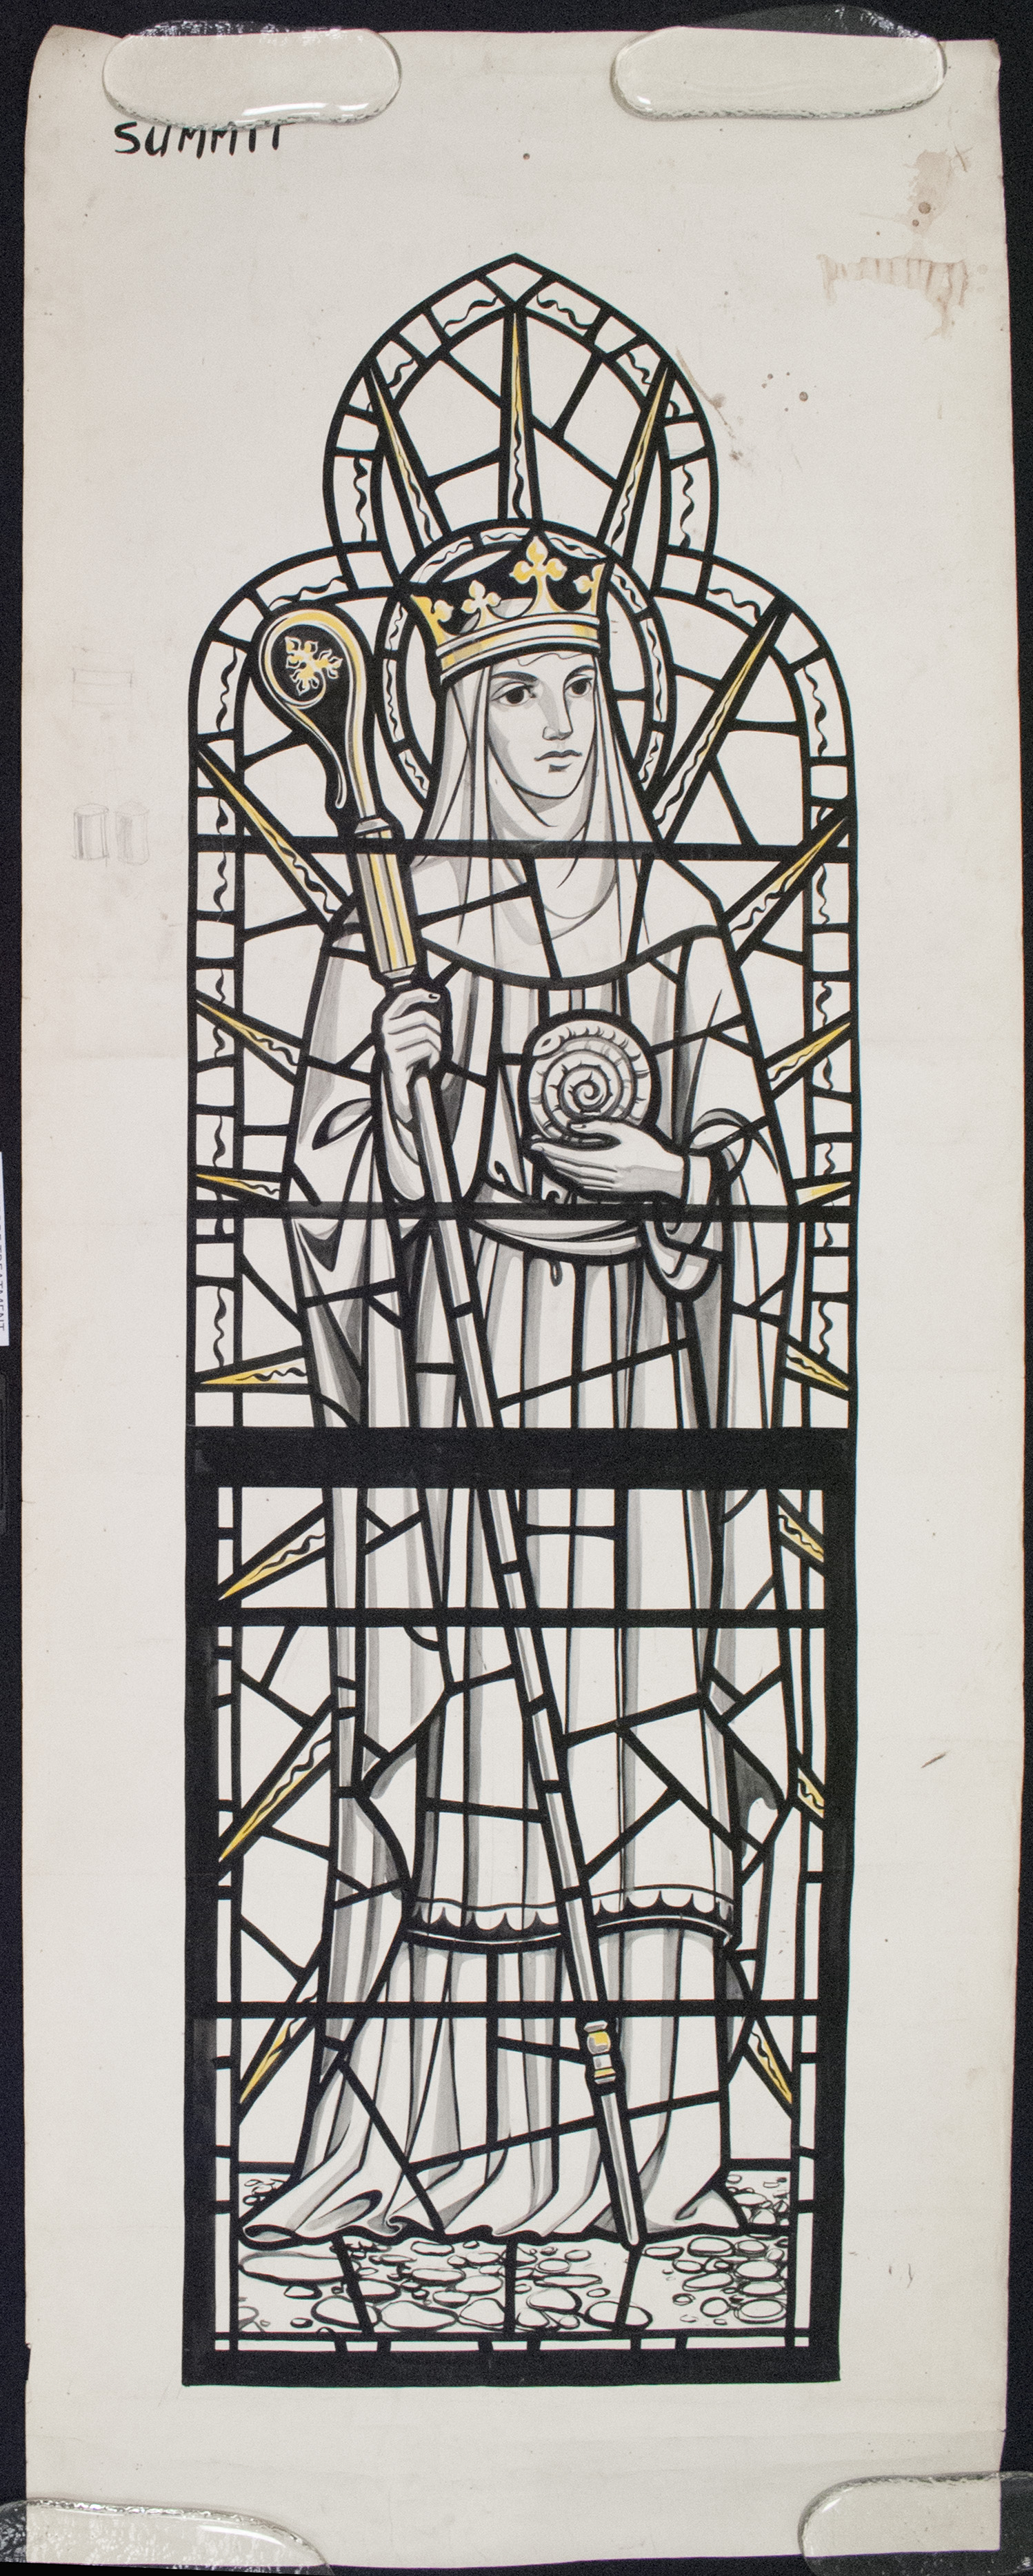 Paper cartoon for St. Hilda in the Rakow Research Library Whitefriars collection.